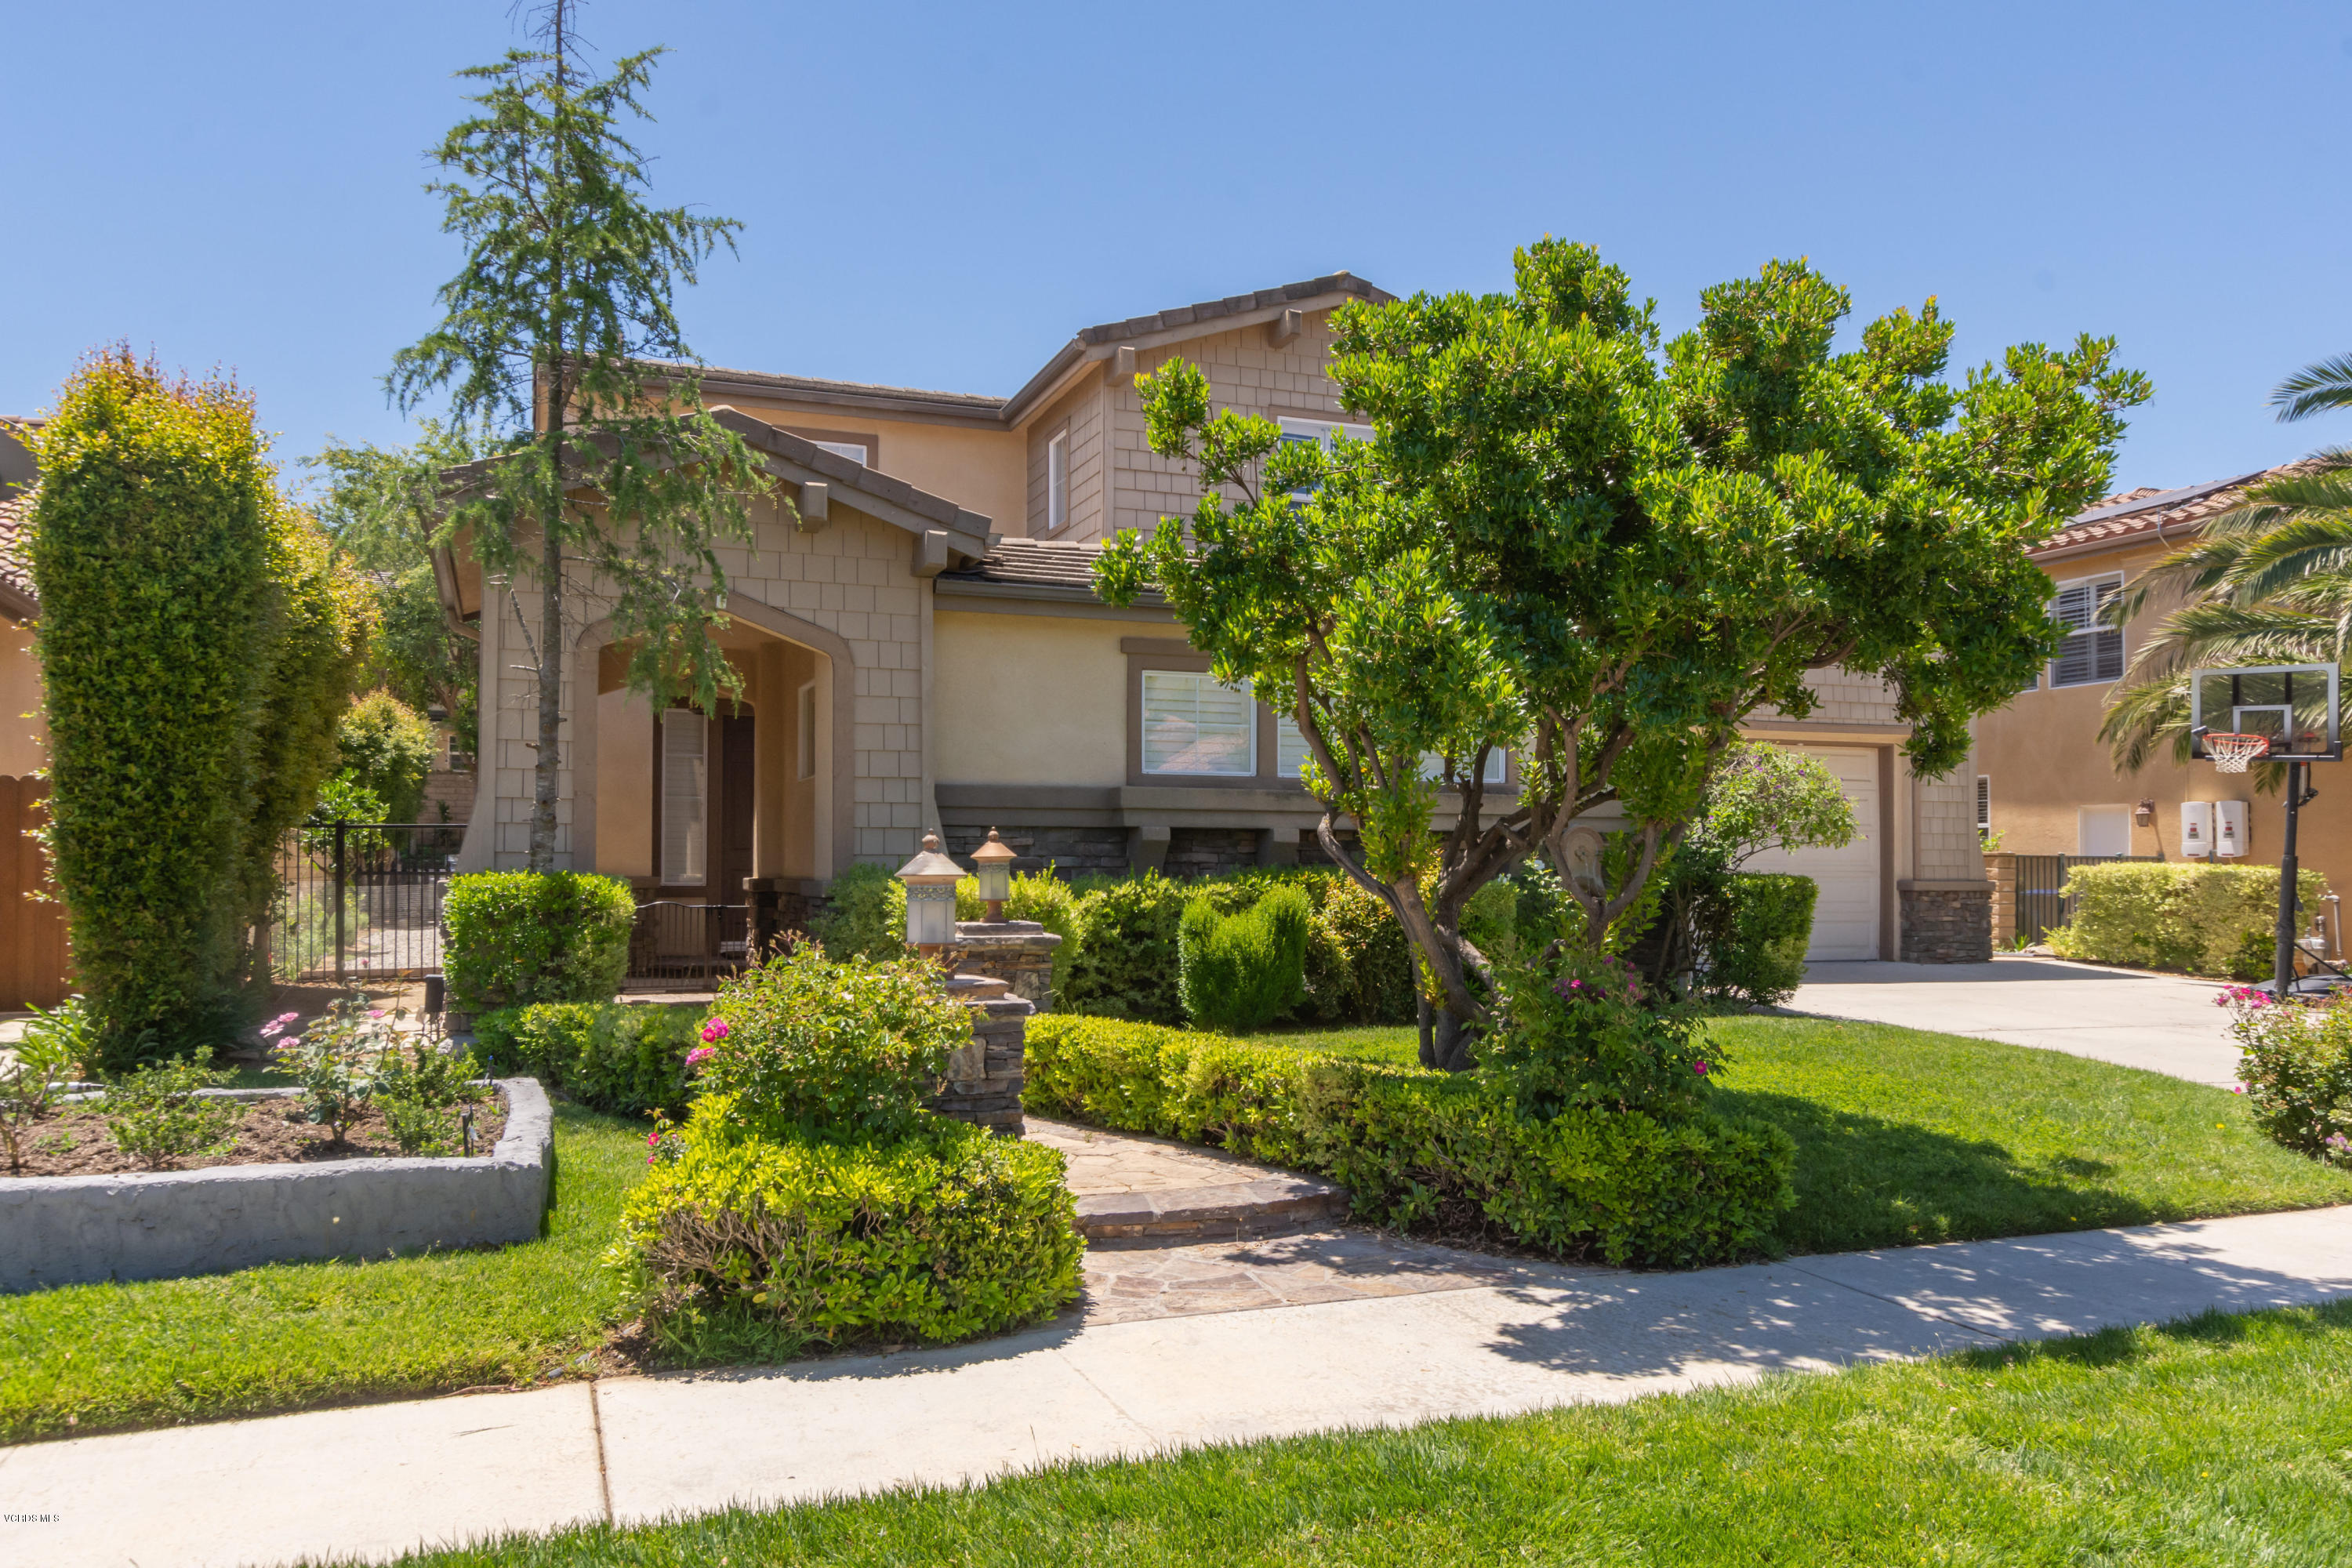 Photo of 3330 Sunset Hills Boulevard, Thousand Oaks, CA 91362